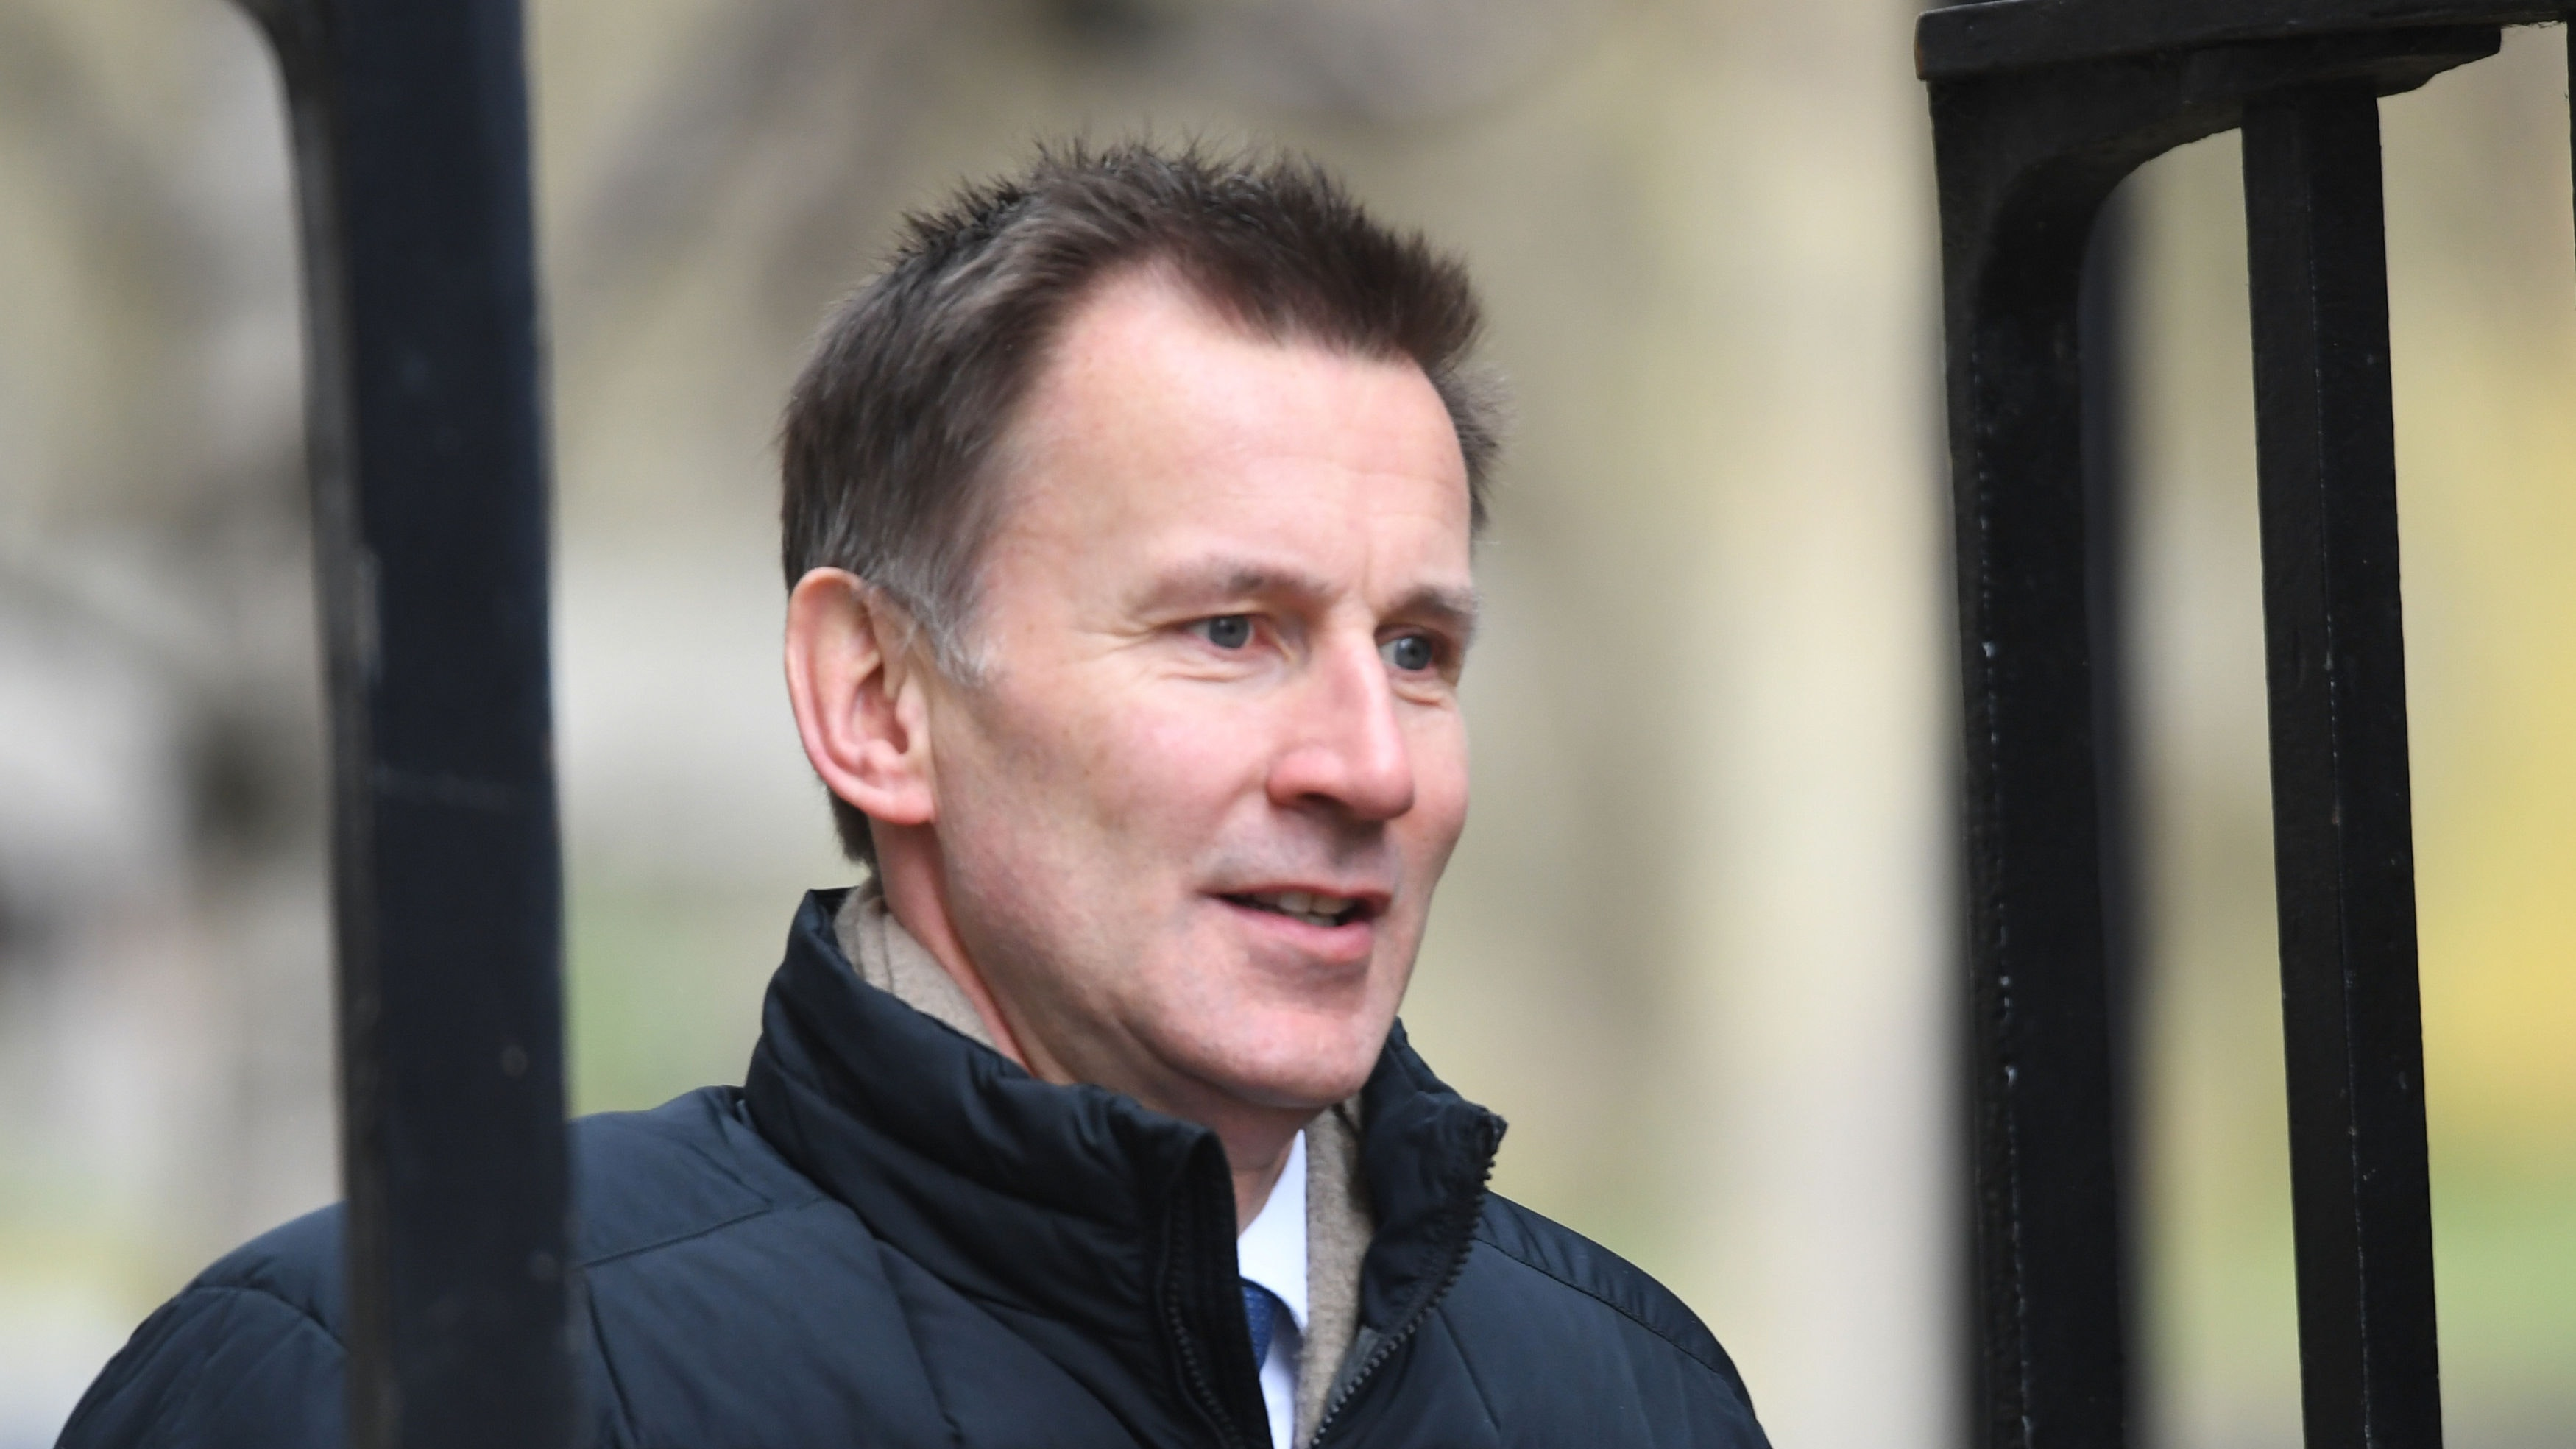 Jeremy hunt sets out blueprint for social care reform bt health and social care workers are faced with fragmented services and unprecedented pressure jeremy hunt admitted as he set out plans for reform malvernweather Image collections